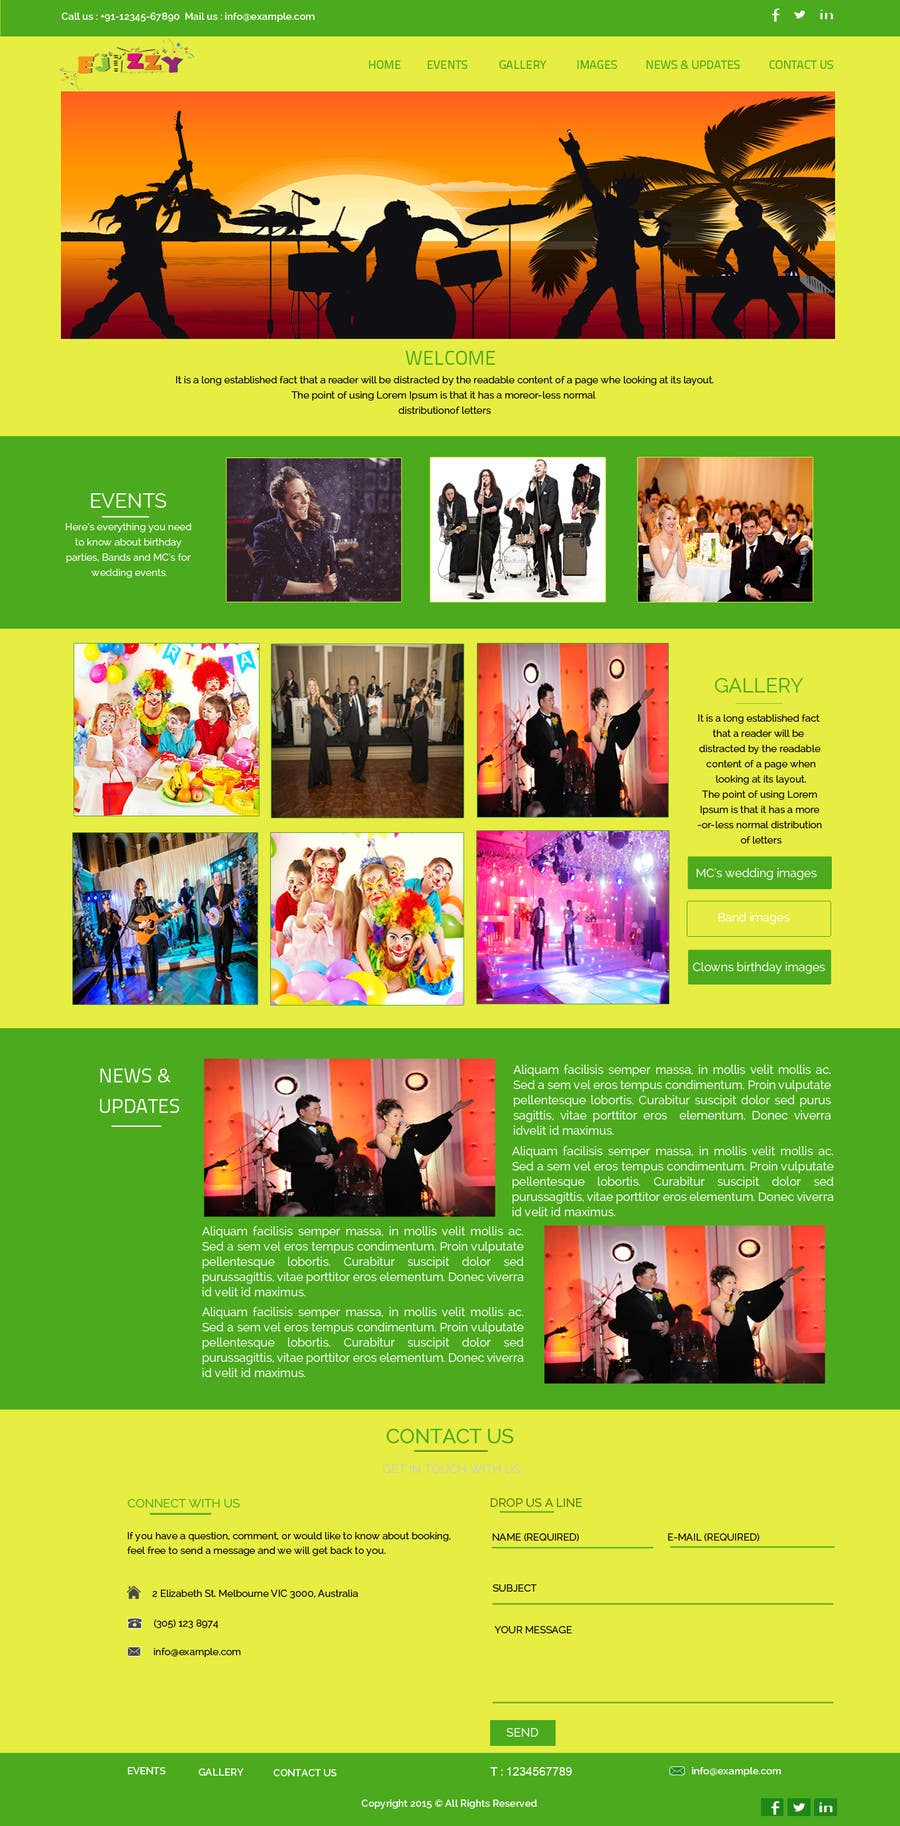 Konkurrenceindlæg #                                        12                                      for                                         Design a Website Mockup for Entertainment Industry